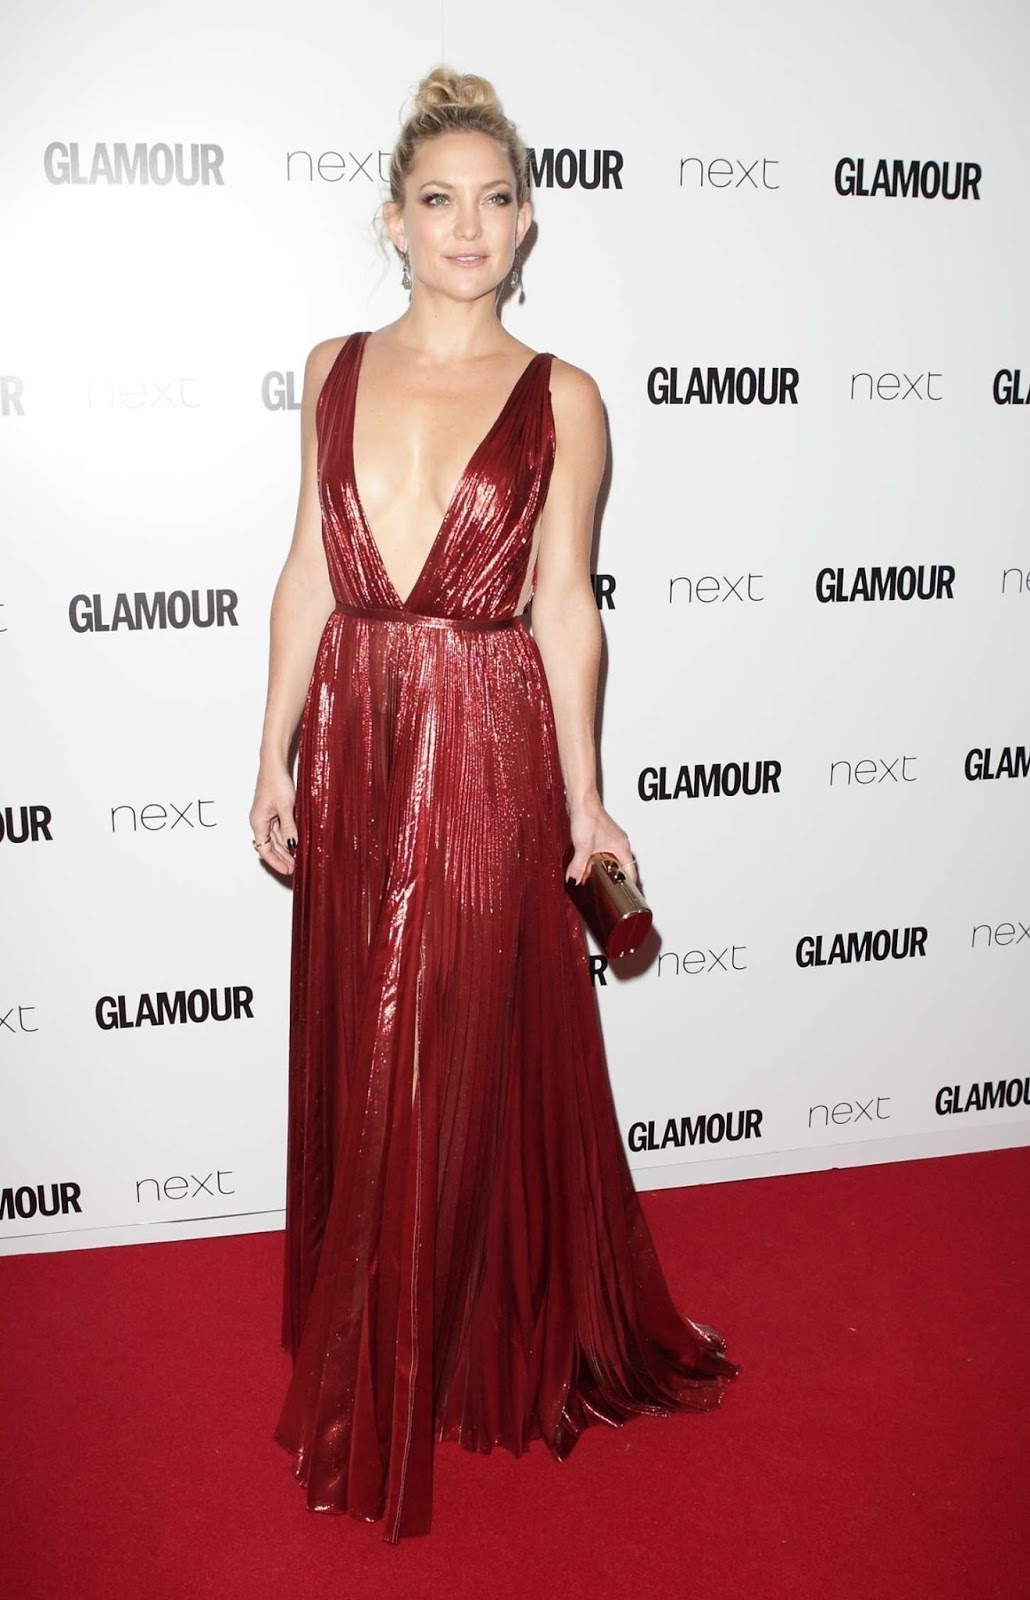 Kate Hudson in a sexy plunging gown at the 2015 Glamour Women Of The Year Awards